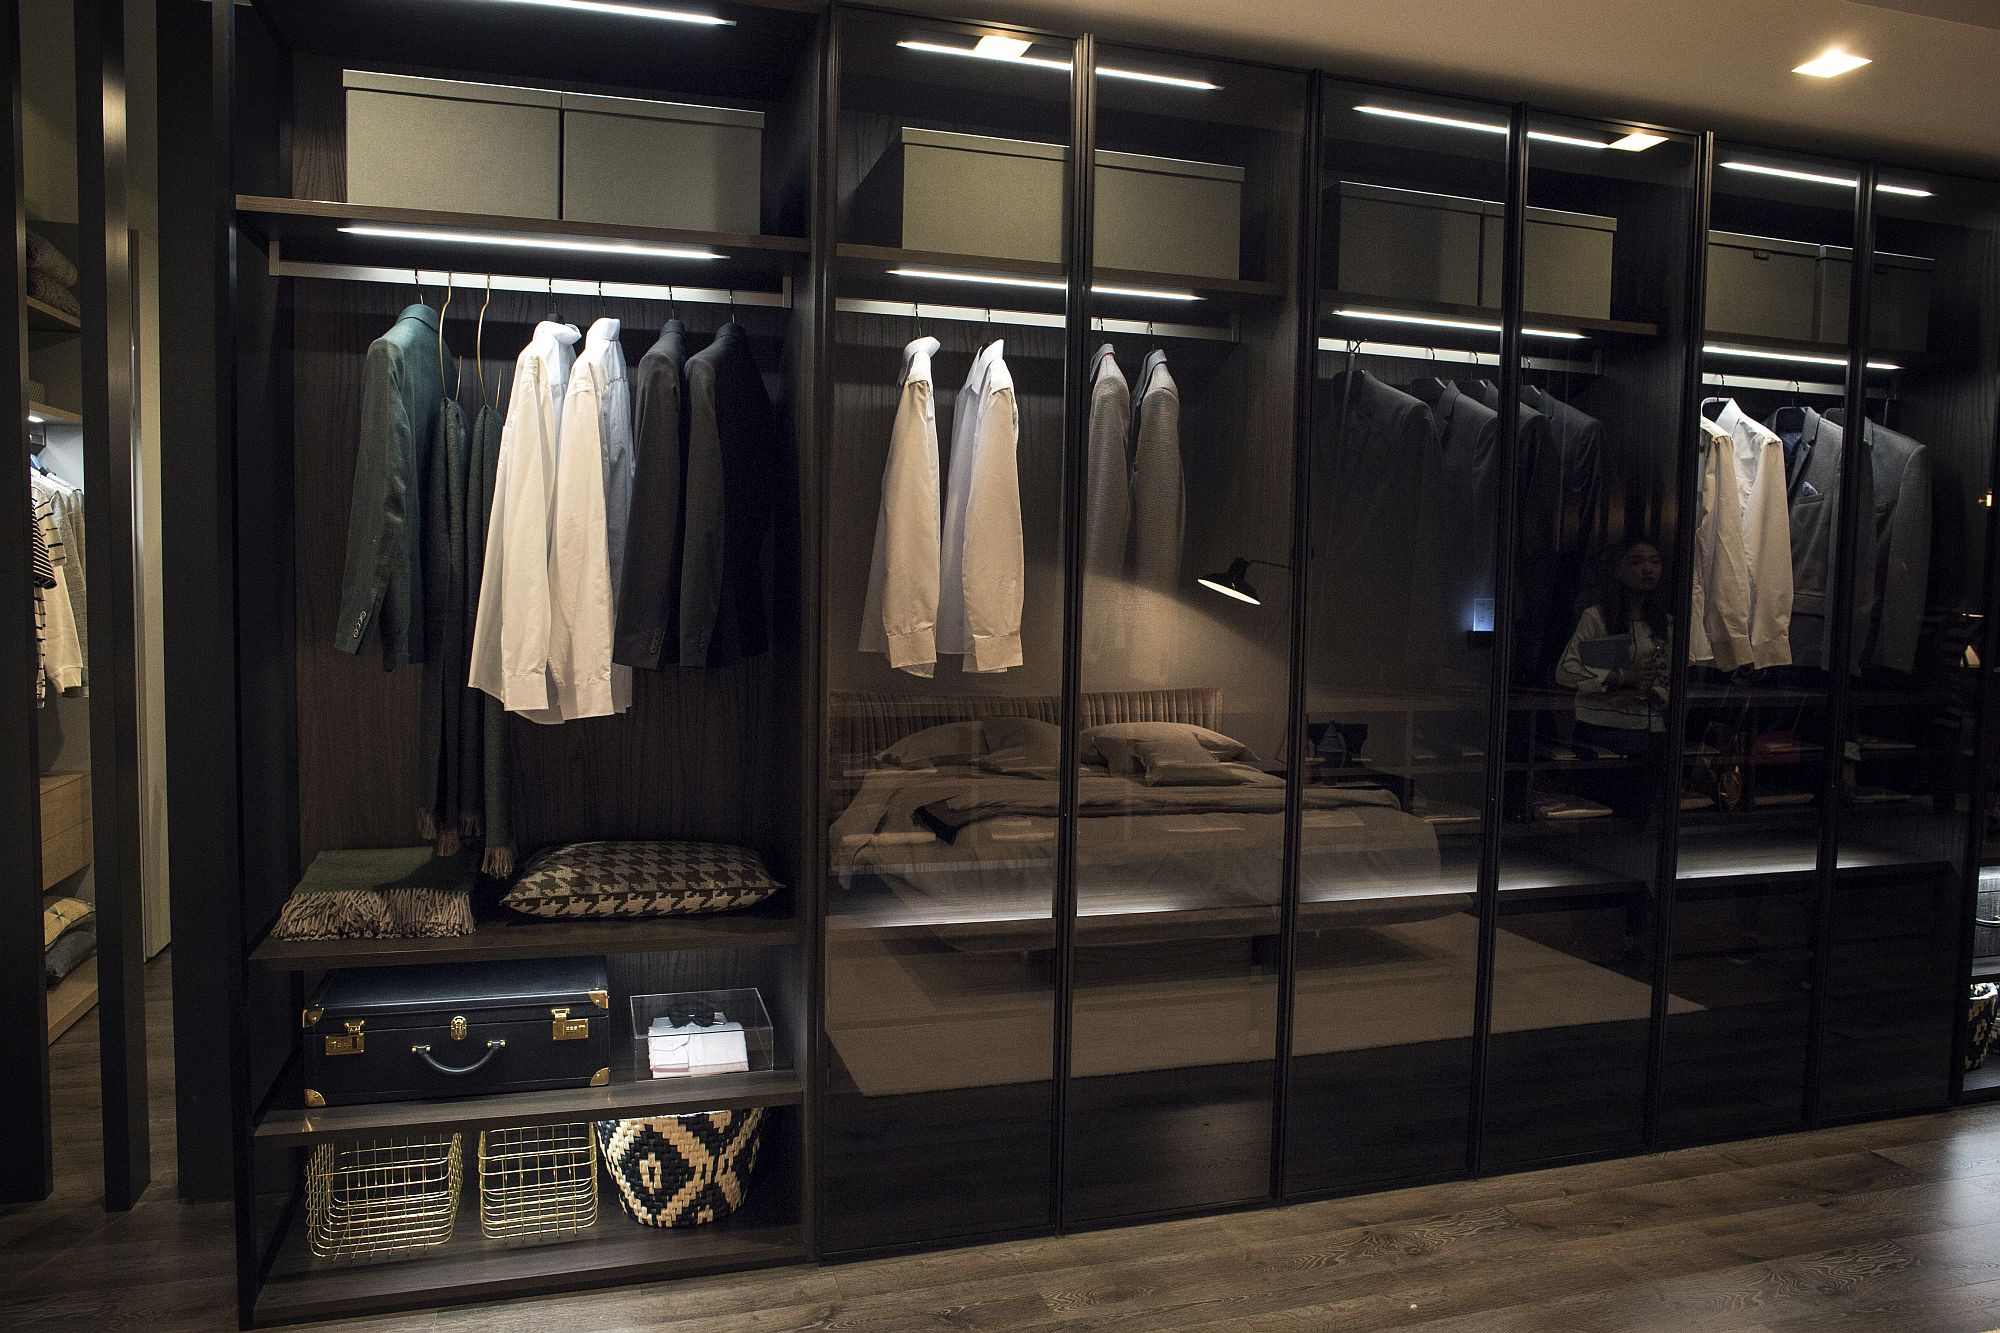 Glass doors for the large bedroom wardrobe are for those who are organized